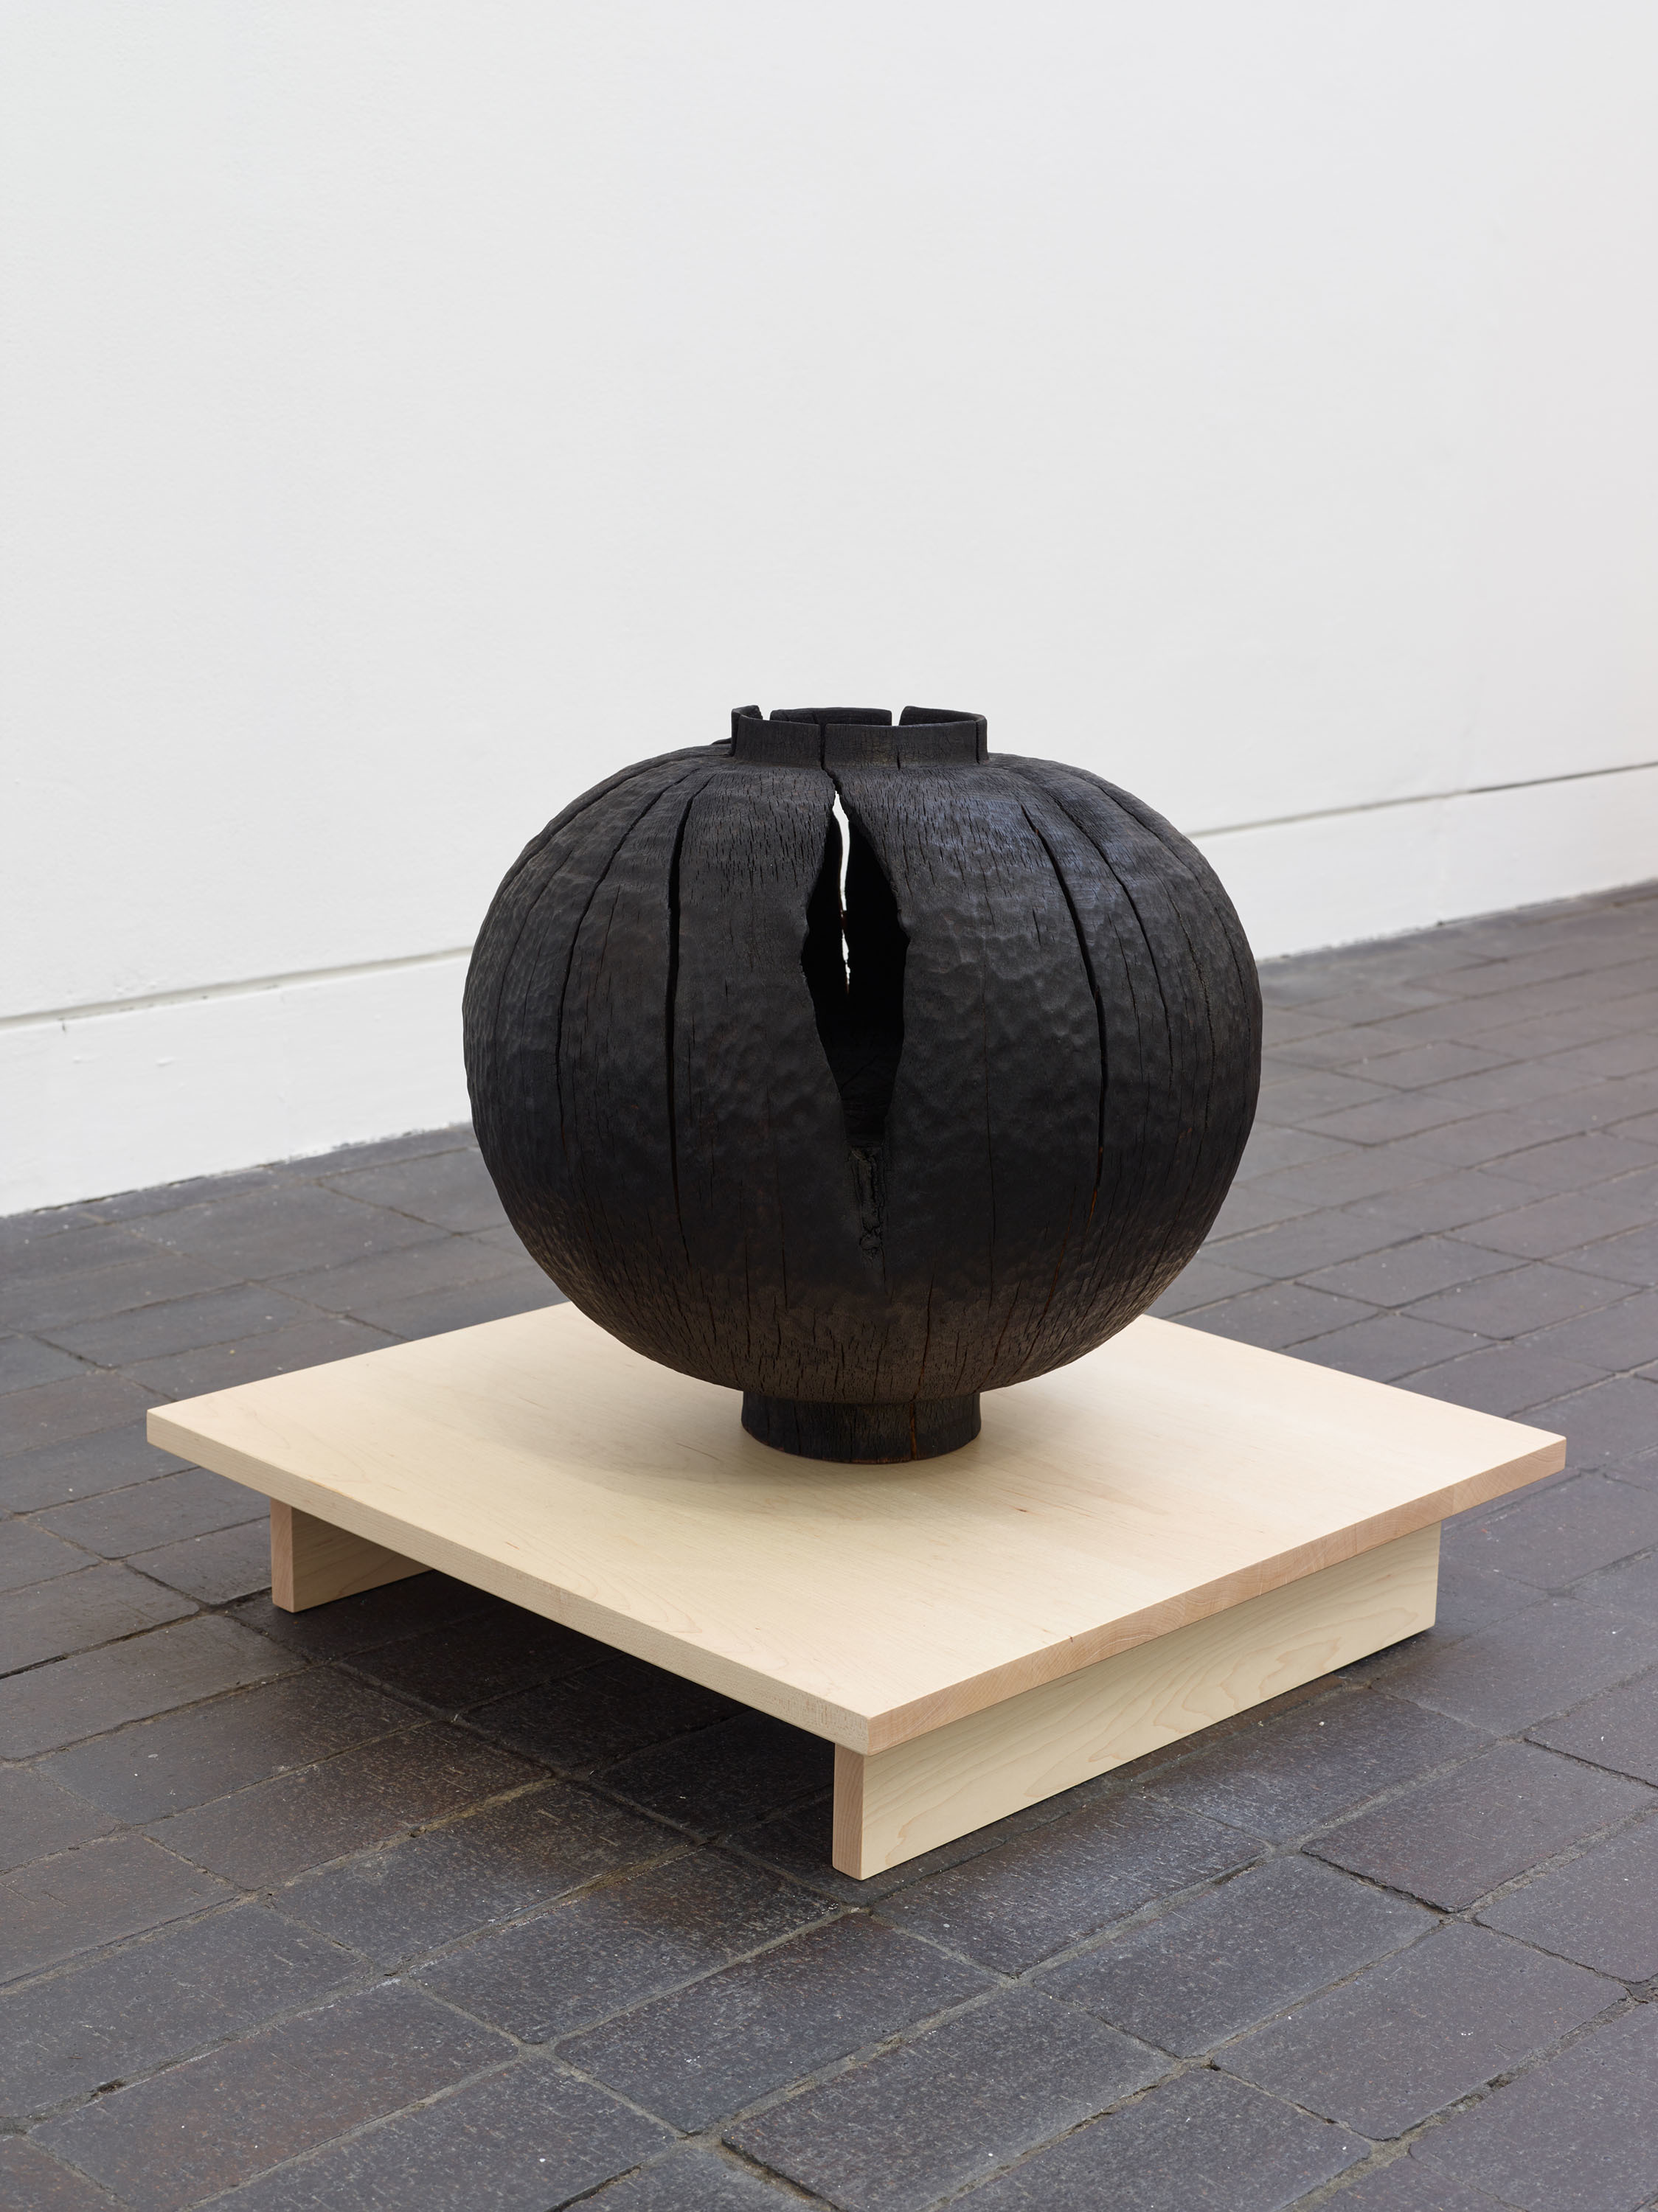 Jerwood_Makers_Open_Forest-Found-Kindled-Land-Jar-2019.-Burnt-beech-pine-tar-cedar-of-Lebanon-linseed-oil-on-maple-plinth.-Photo-Anna-Arca.jpg#asset:2071